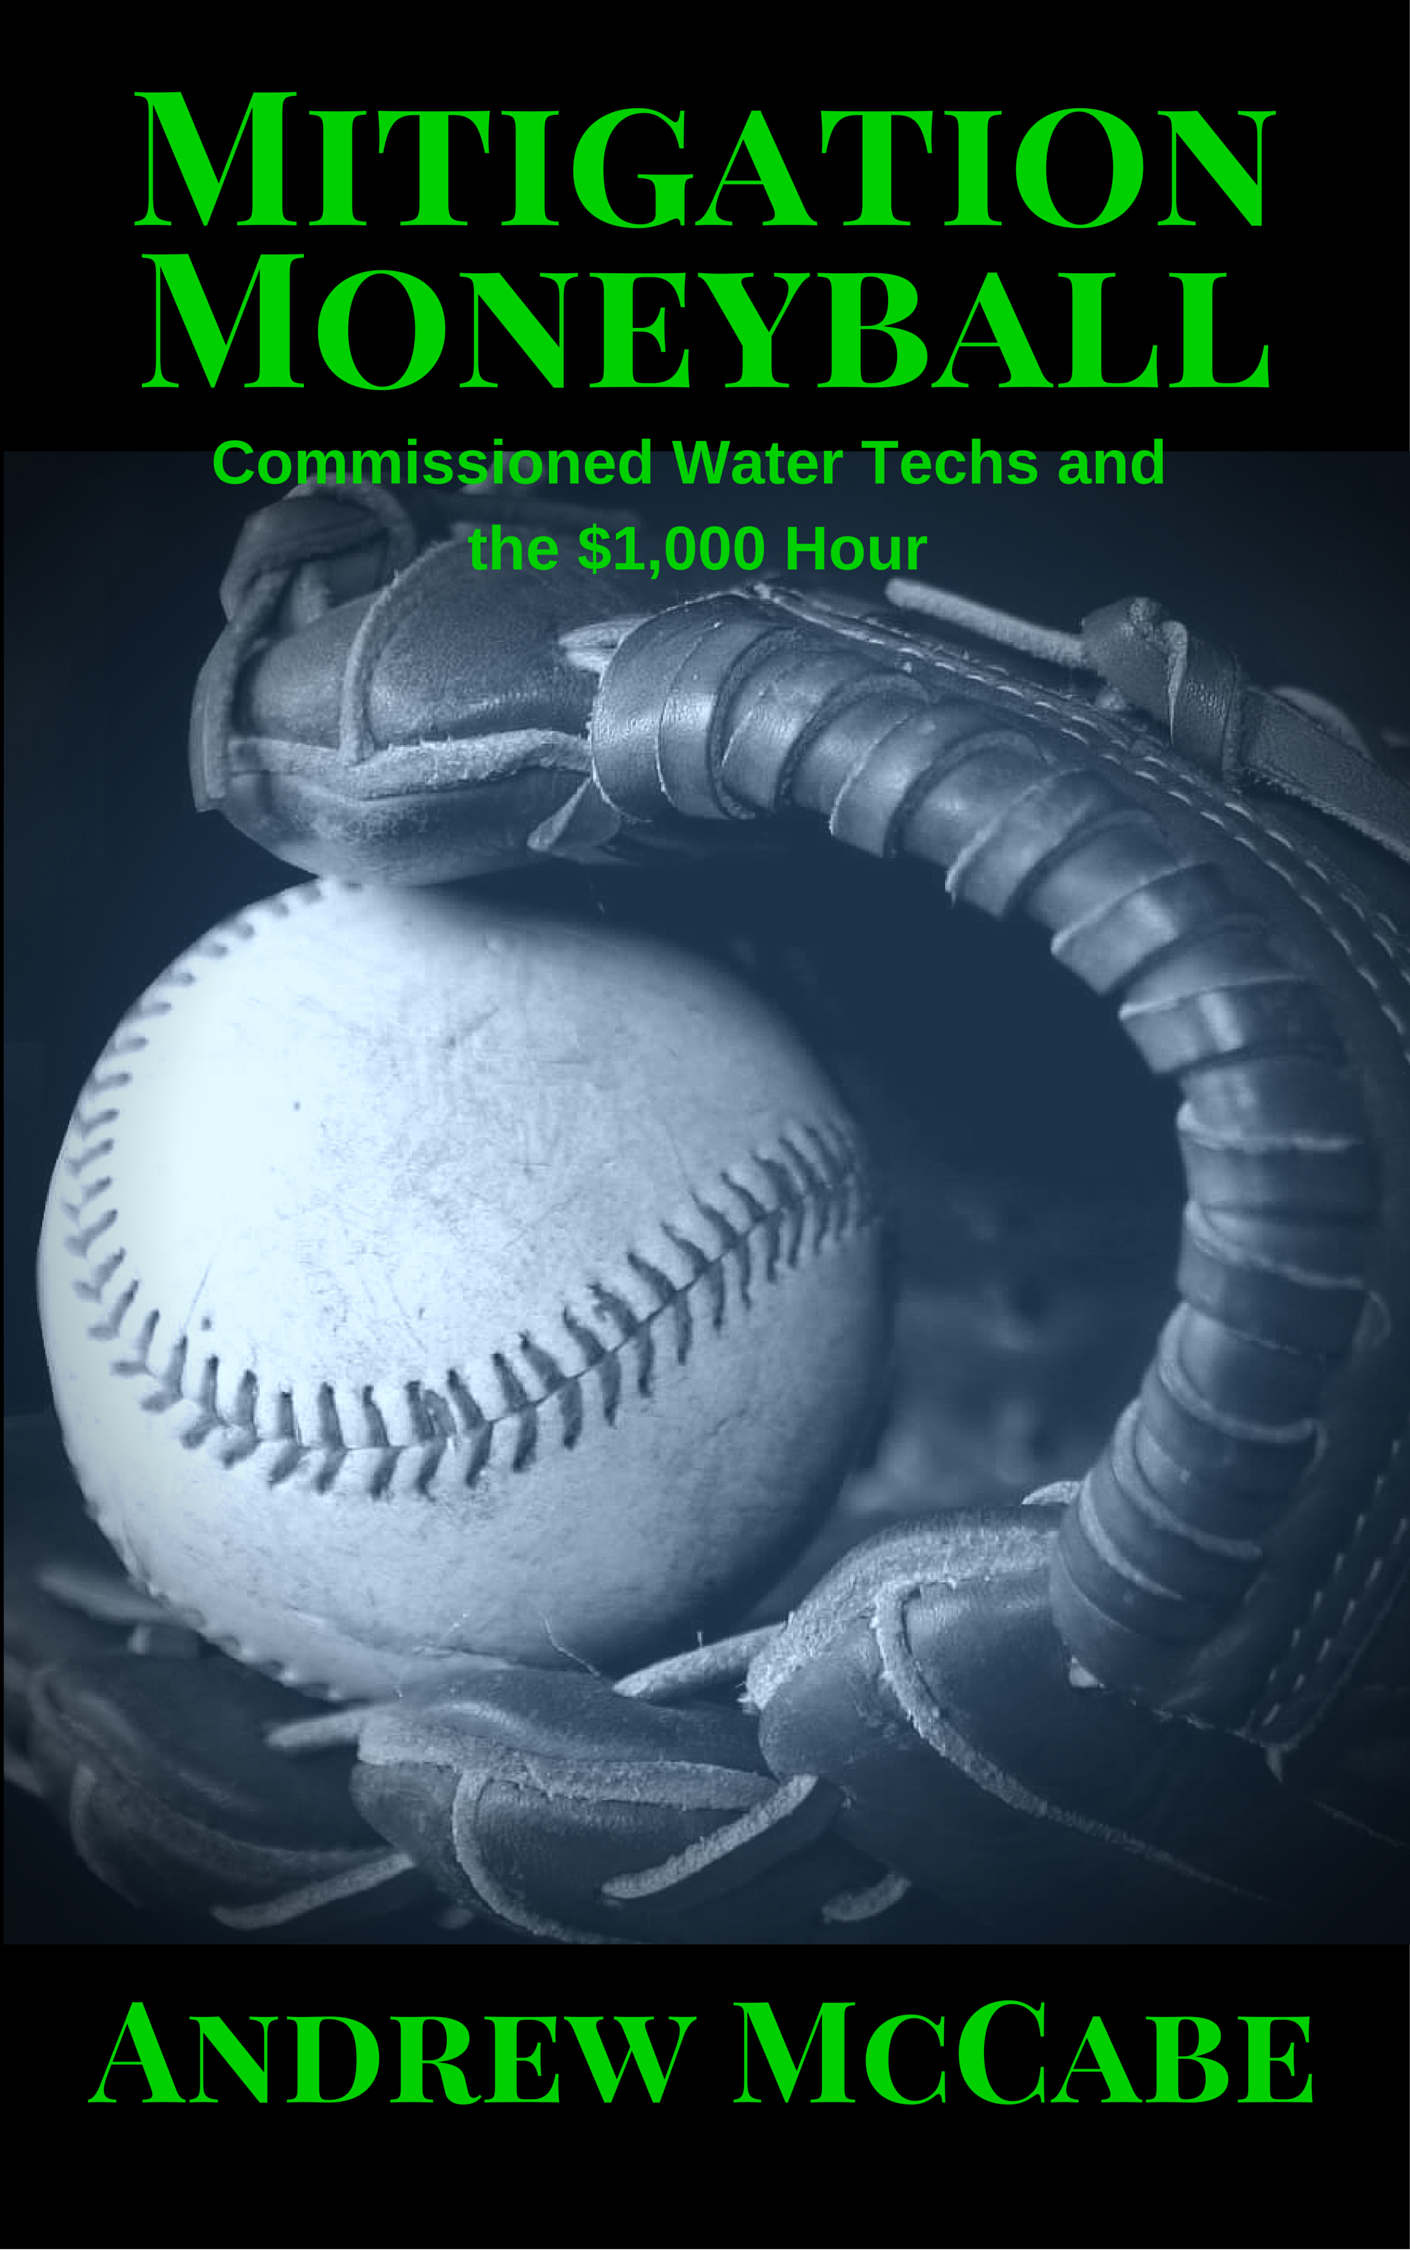 Mitigation Moneyball: Water Techs and the $1,000 Hour